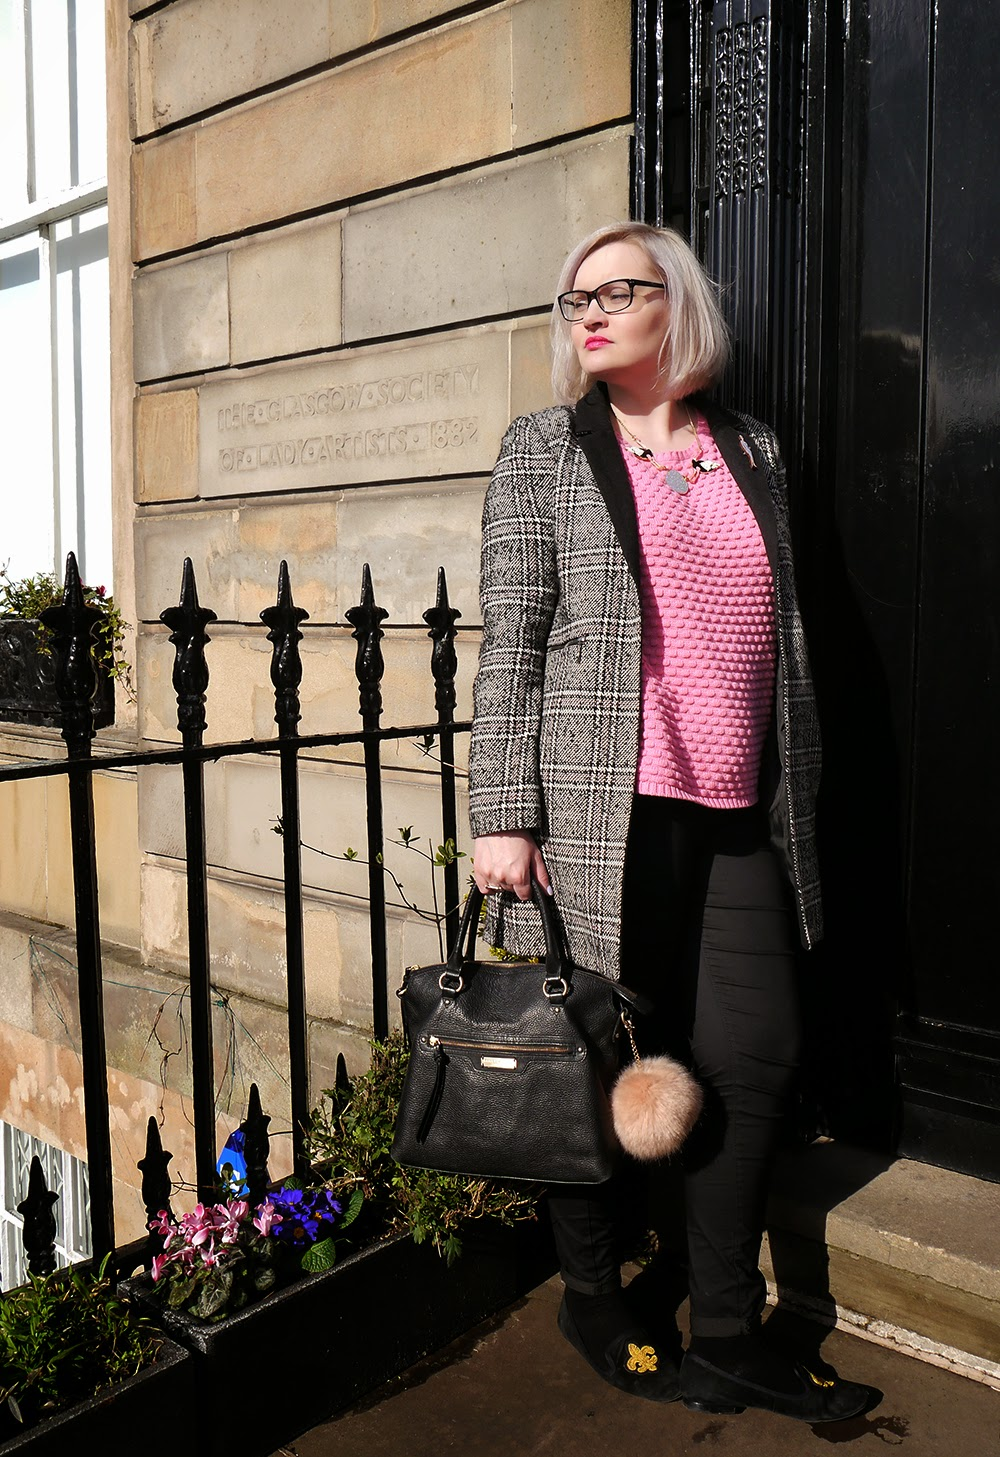 Debenhams, Glasgow, Scottish style, bob hairstyle 2015, blogger, Warehouse, pom pom, Hillarys Crafternoon, brights, #OOTD